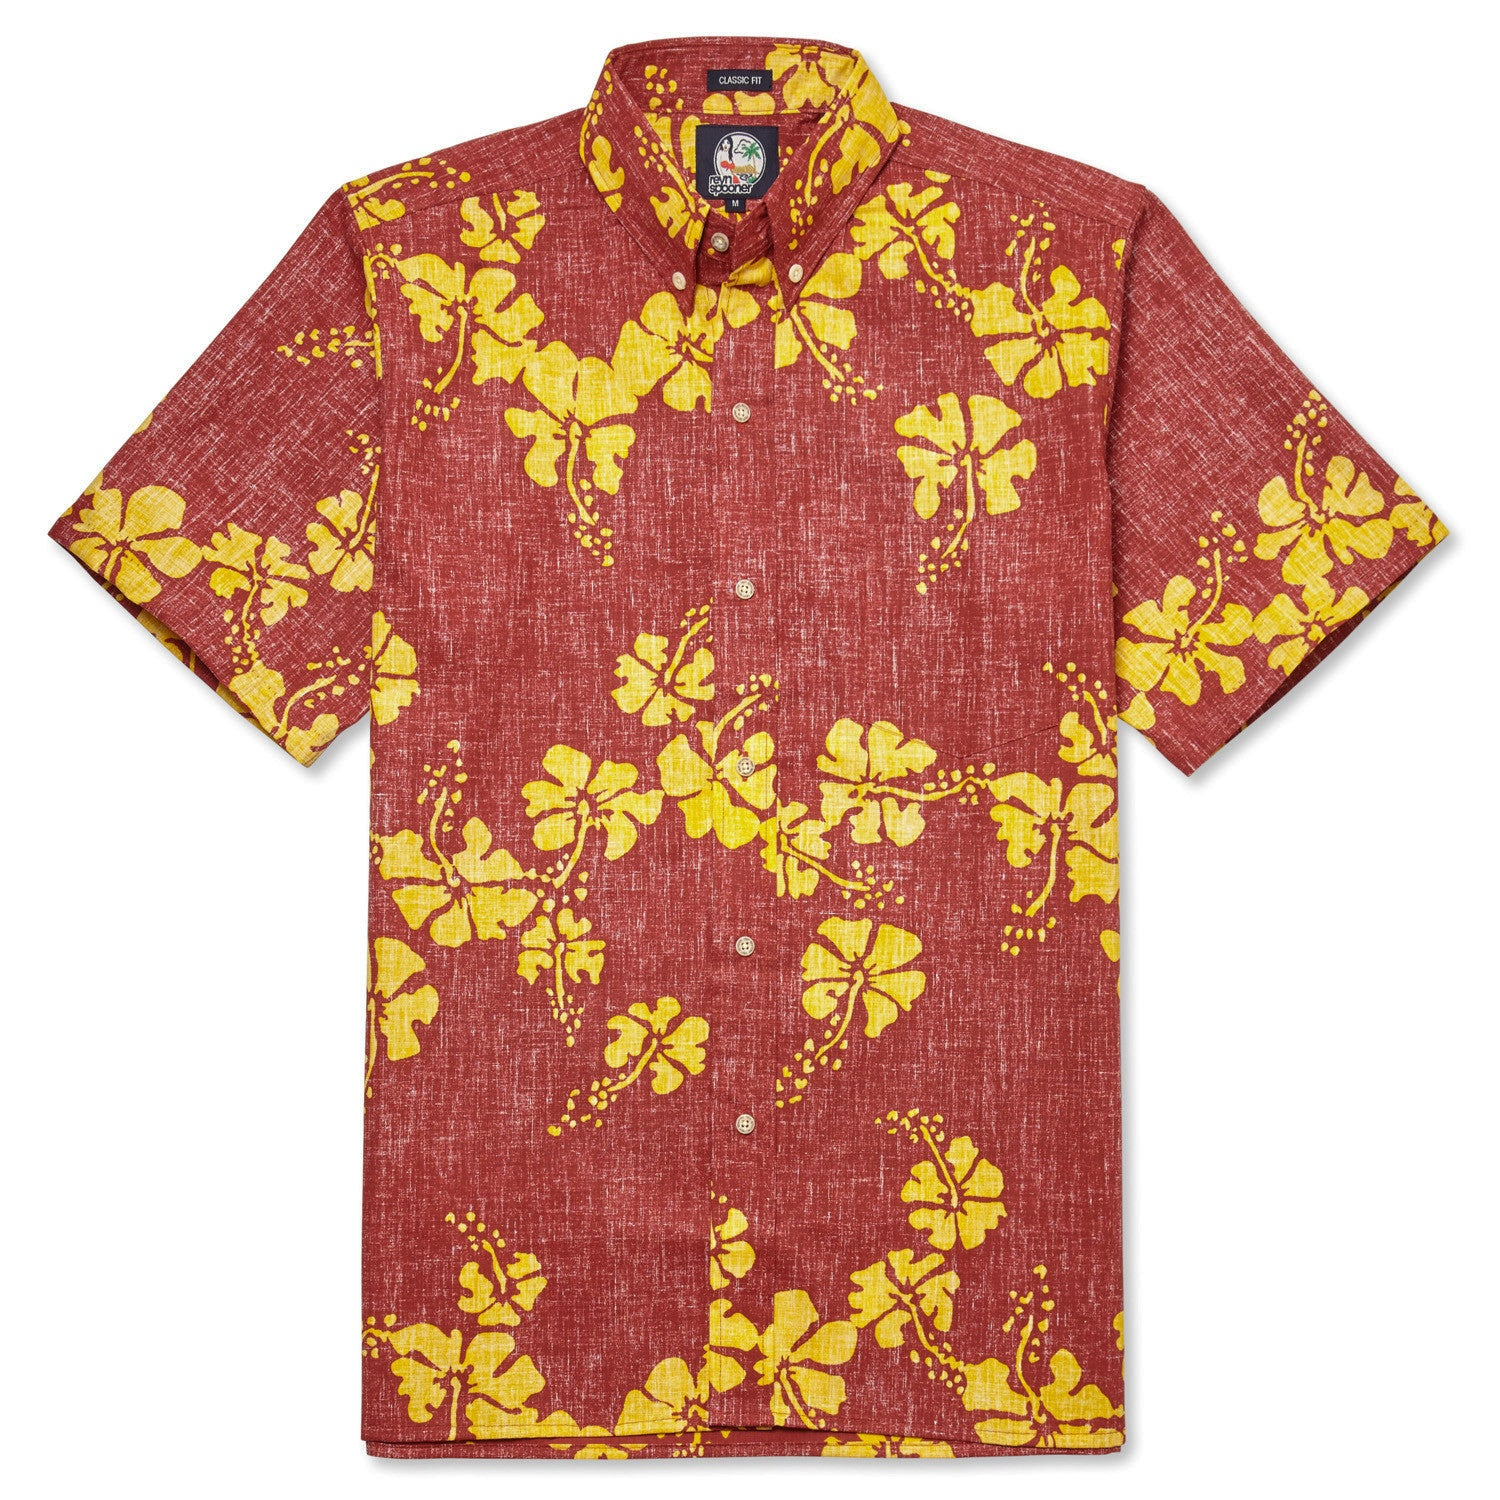 50Th State Flower / Classic Fit Button Front Shirt, Cotton/Polyester, For Men, 2XL, Crimson Red, From Reyn Spooner